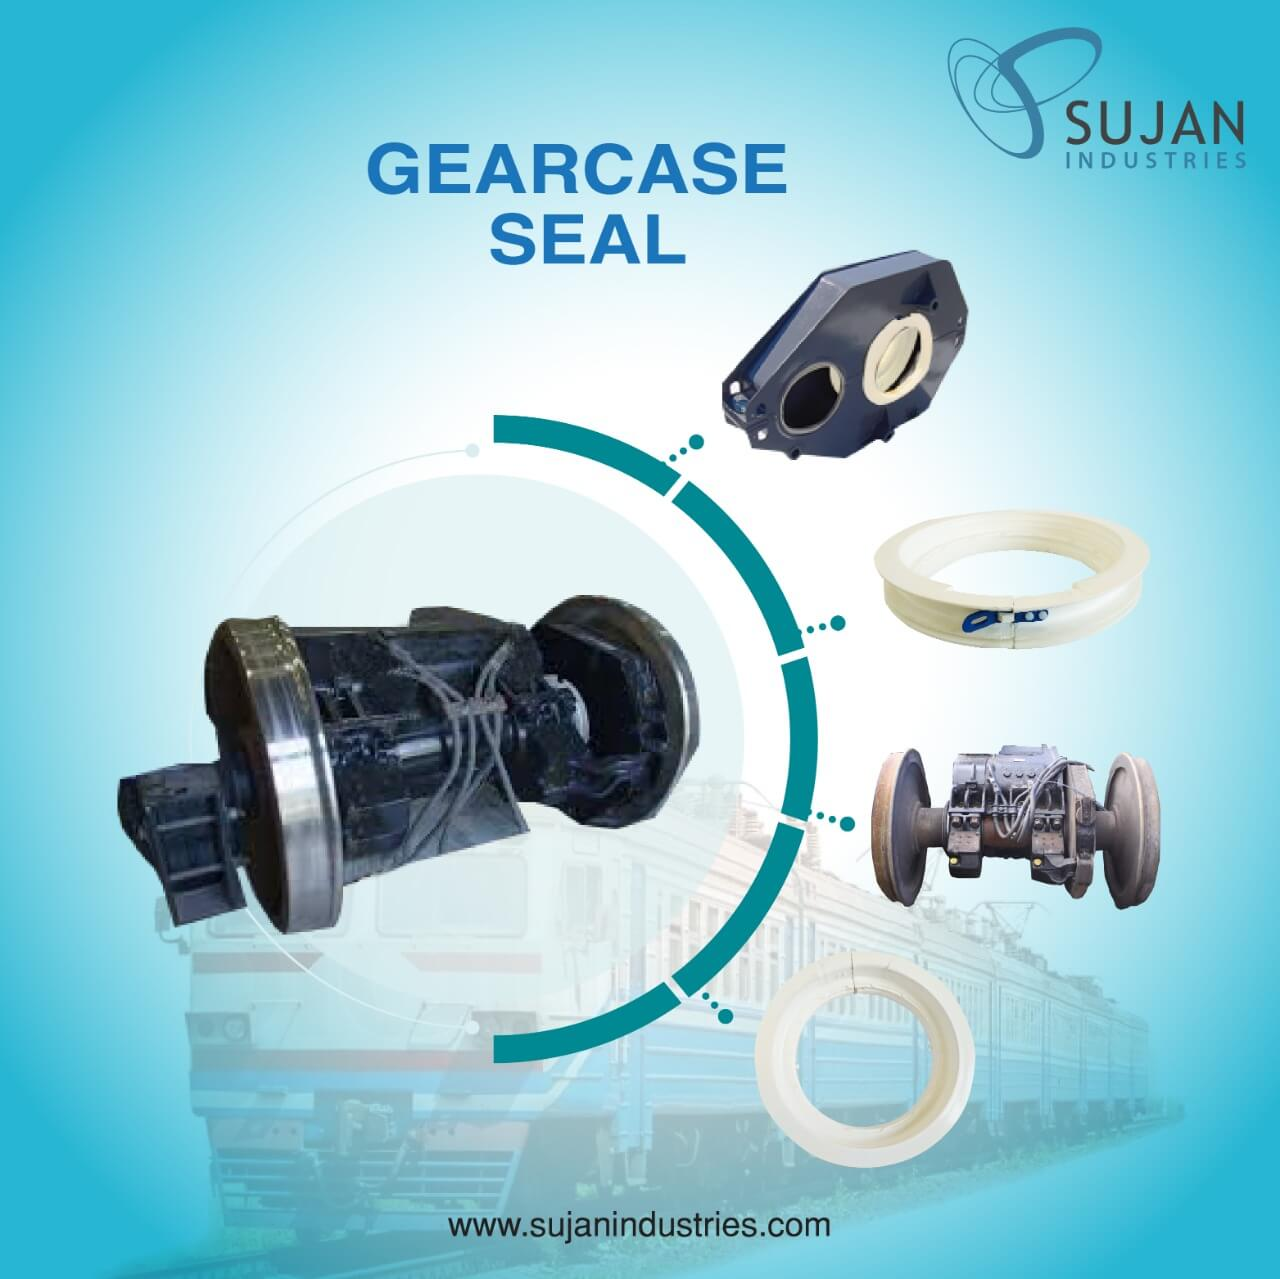 locomotive-gearcase-seal-EMD-gear-case-seal-sujan